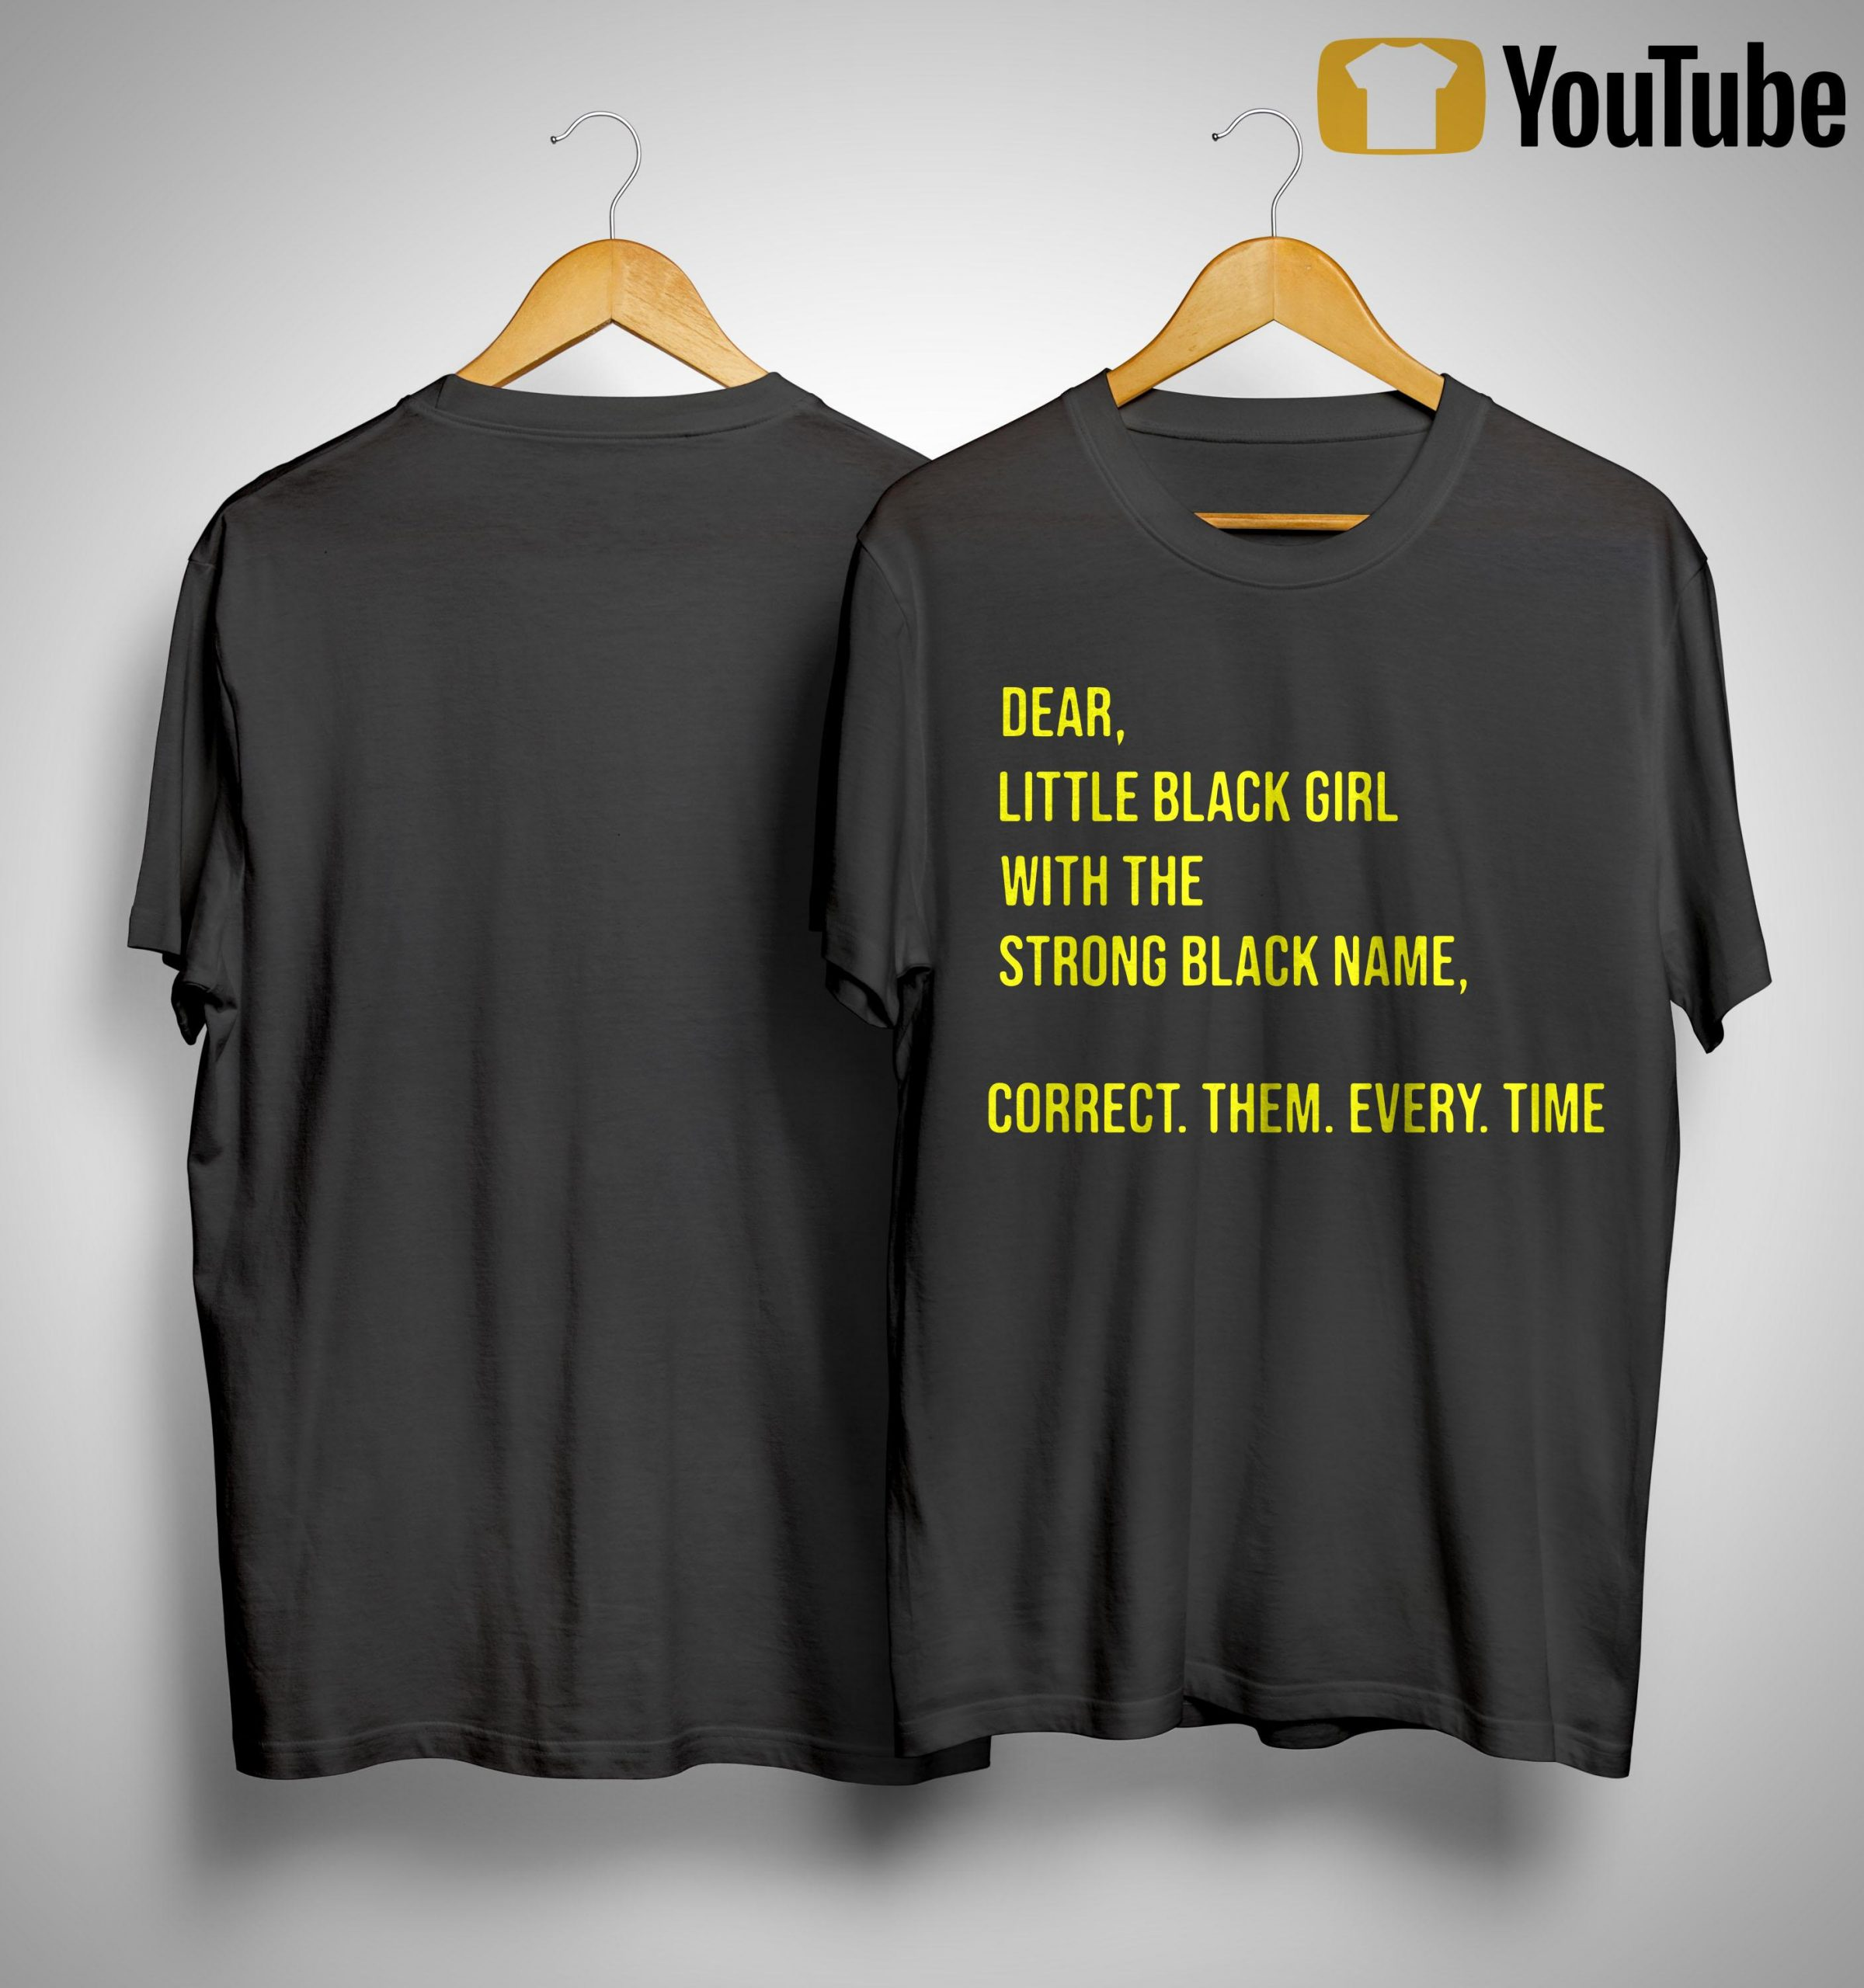 Dear Little Black Girl With The Strong Black Name Correct Them Every Time Shirt